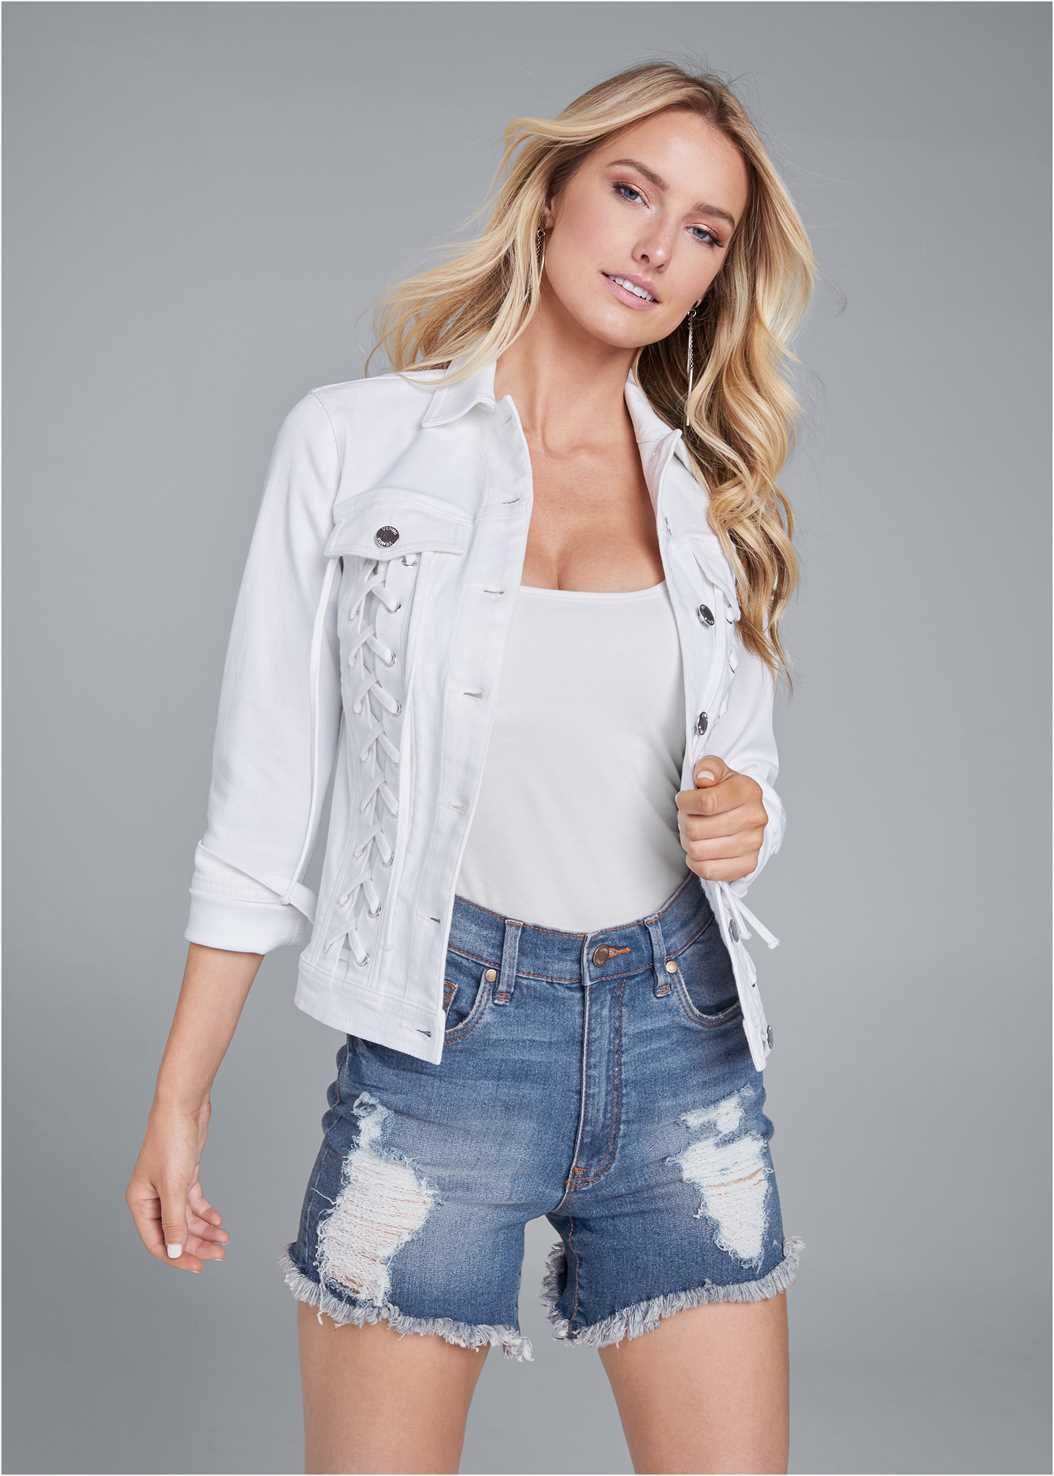 Lace Up Jean Jacket,Basic Cami Two Pack,Distressed Jean Shorts,Essential Espadrille Wedges